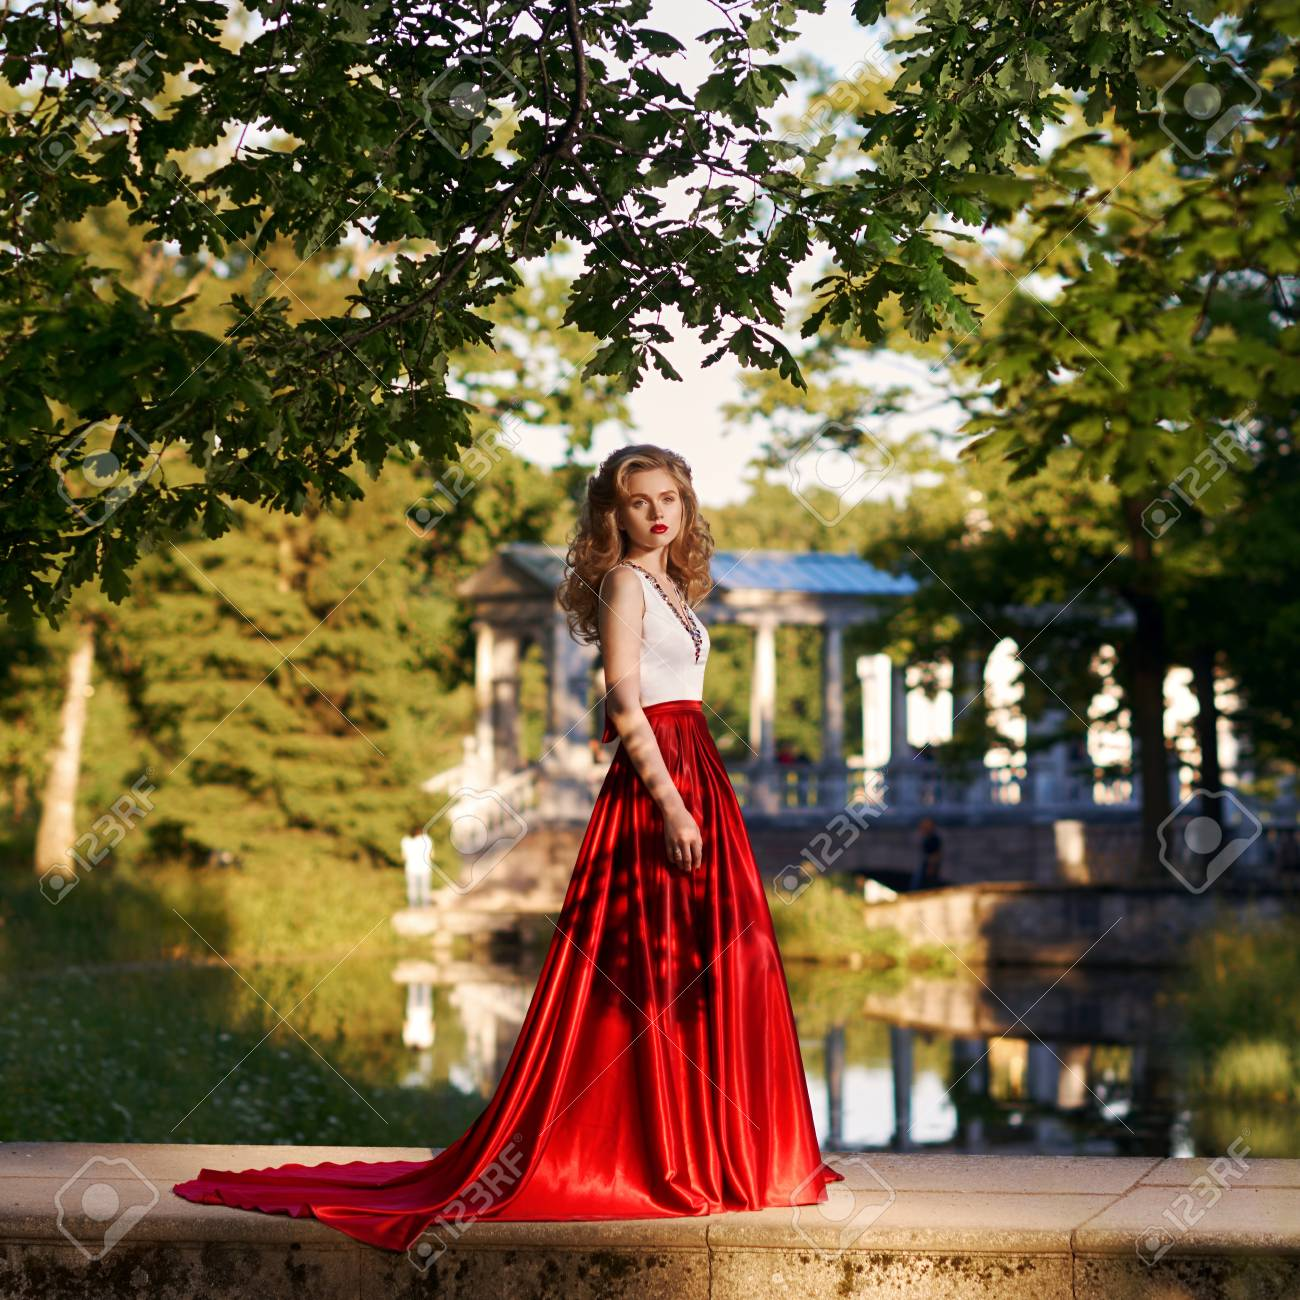 f44e29a8045 Fashion style photo of young beautiful woman in evening dress with white  top and red flying skirt posing in summer park at sunset under green trees  and ...